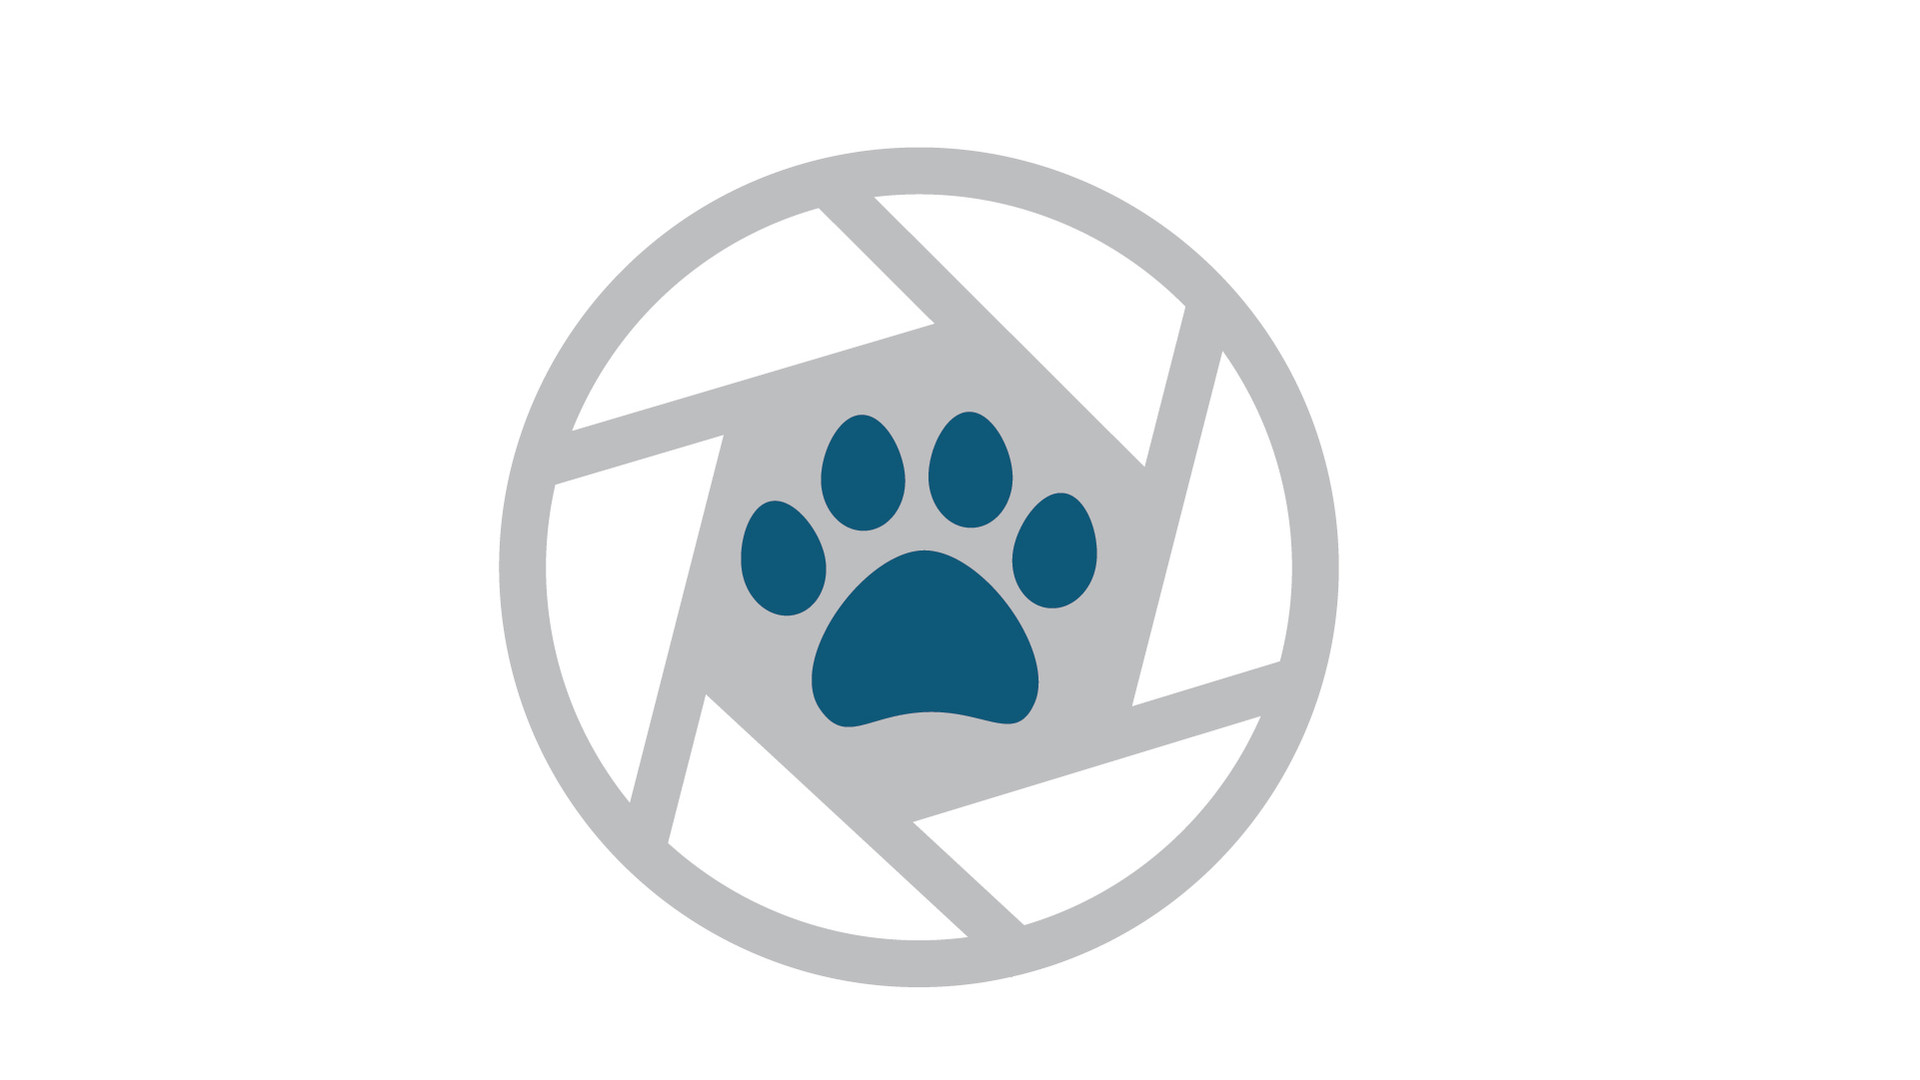 Paws for Photos logo